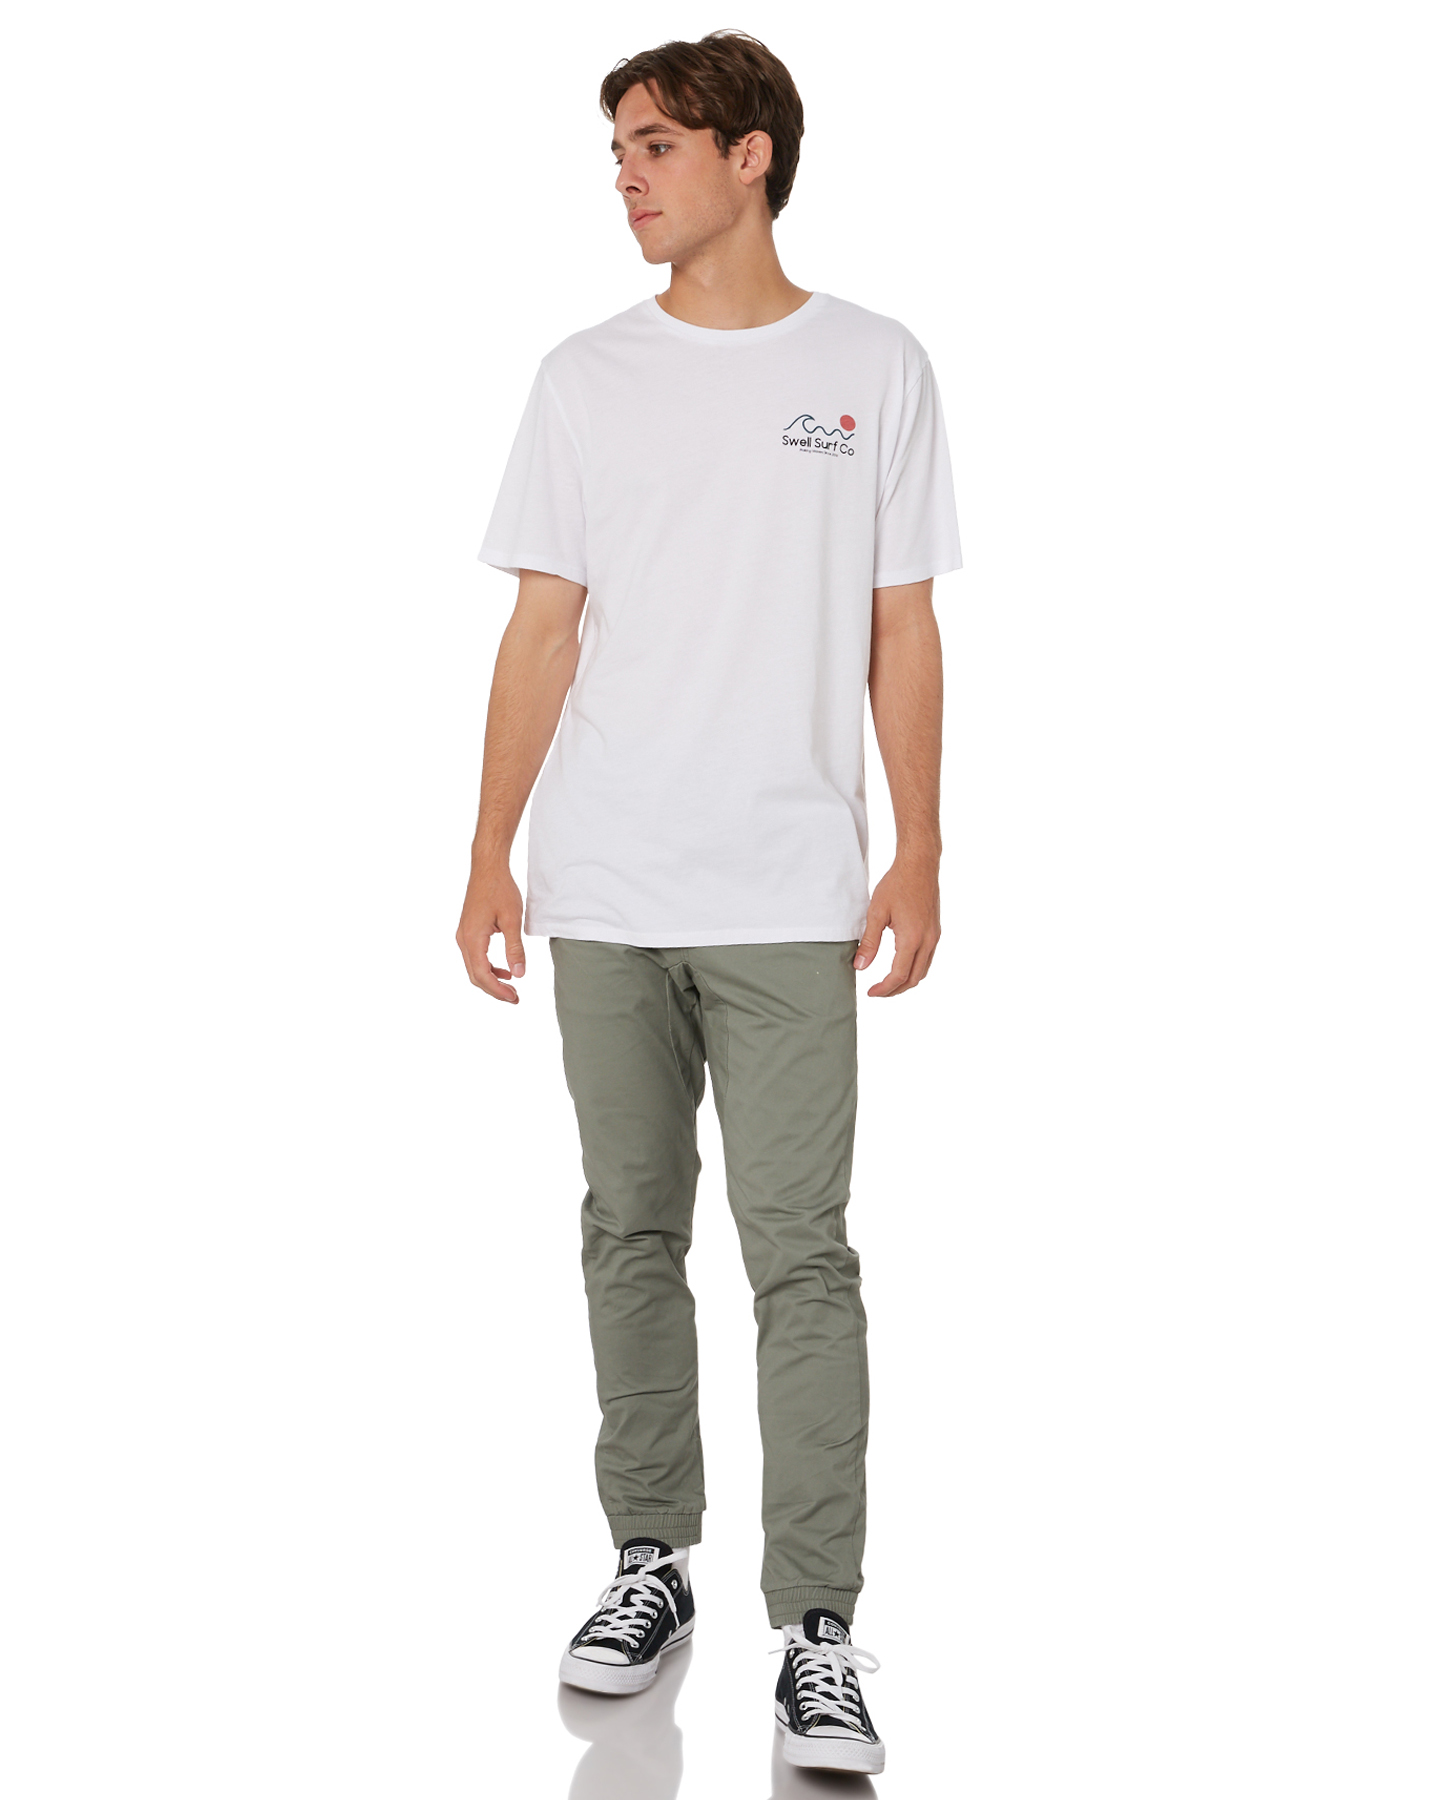 New-Swell-Men-039-s-Blunt-Cargo-Mens-Jogger-Pant-Cotton-Elastane-Green thumbnail 20